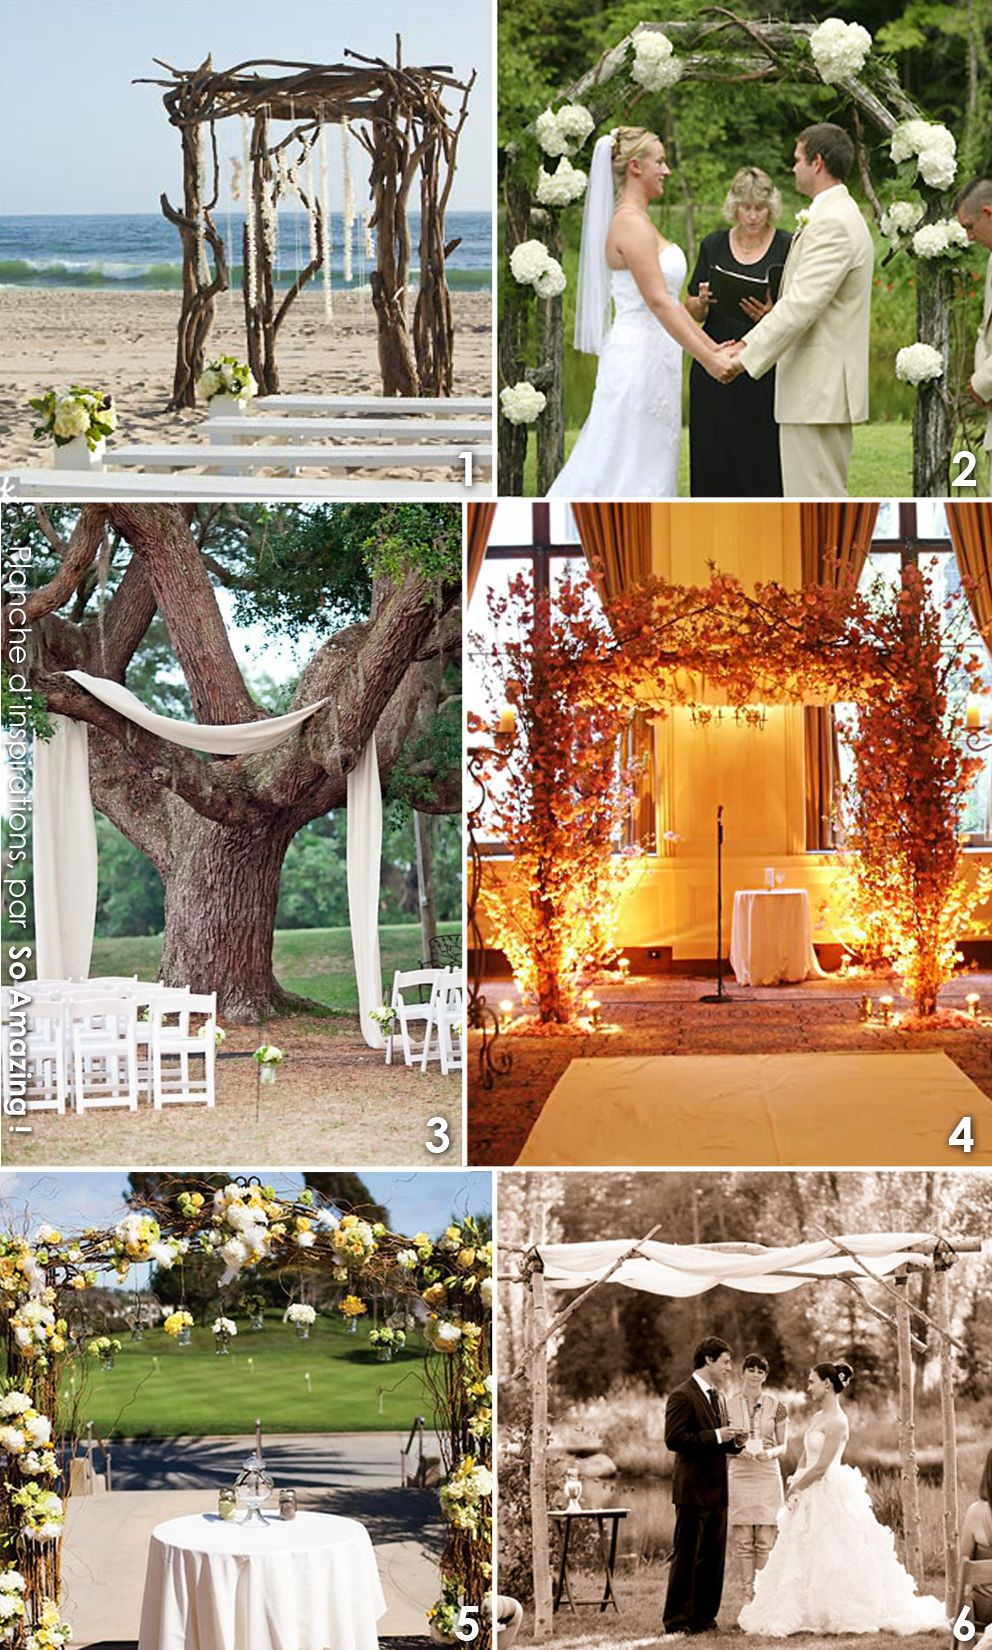 Decoration ceremonie laique engagement exterieur idees arche huppa rustique vintage nature Idees deco mariage champetre